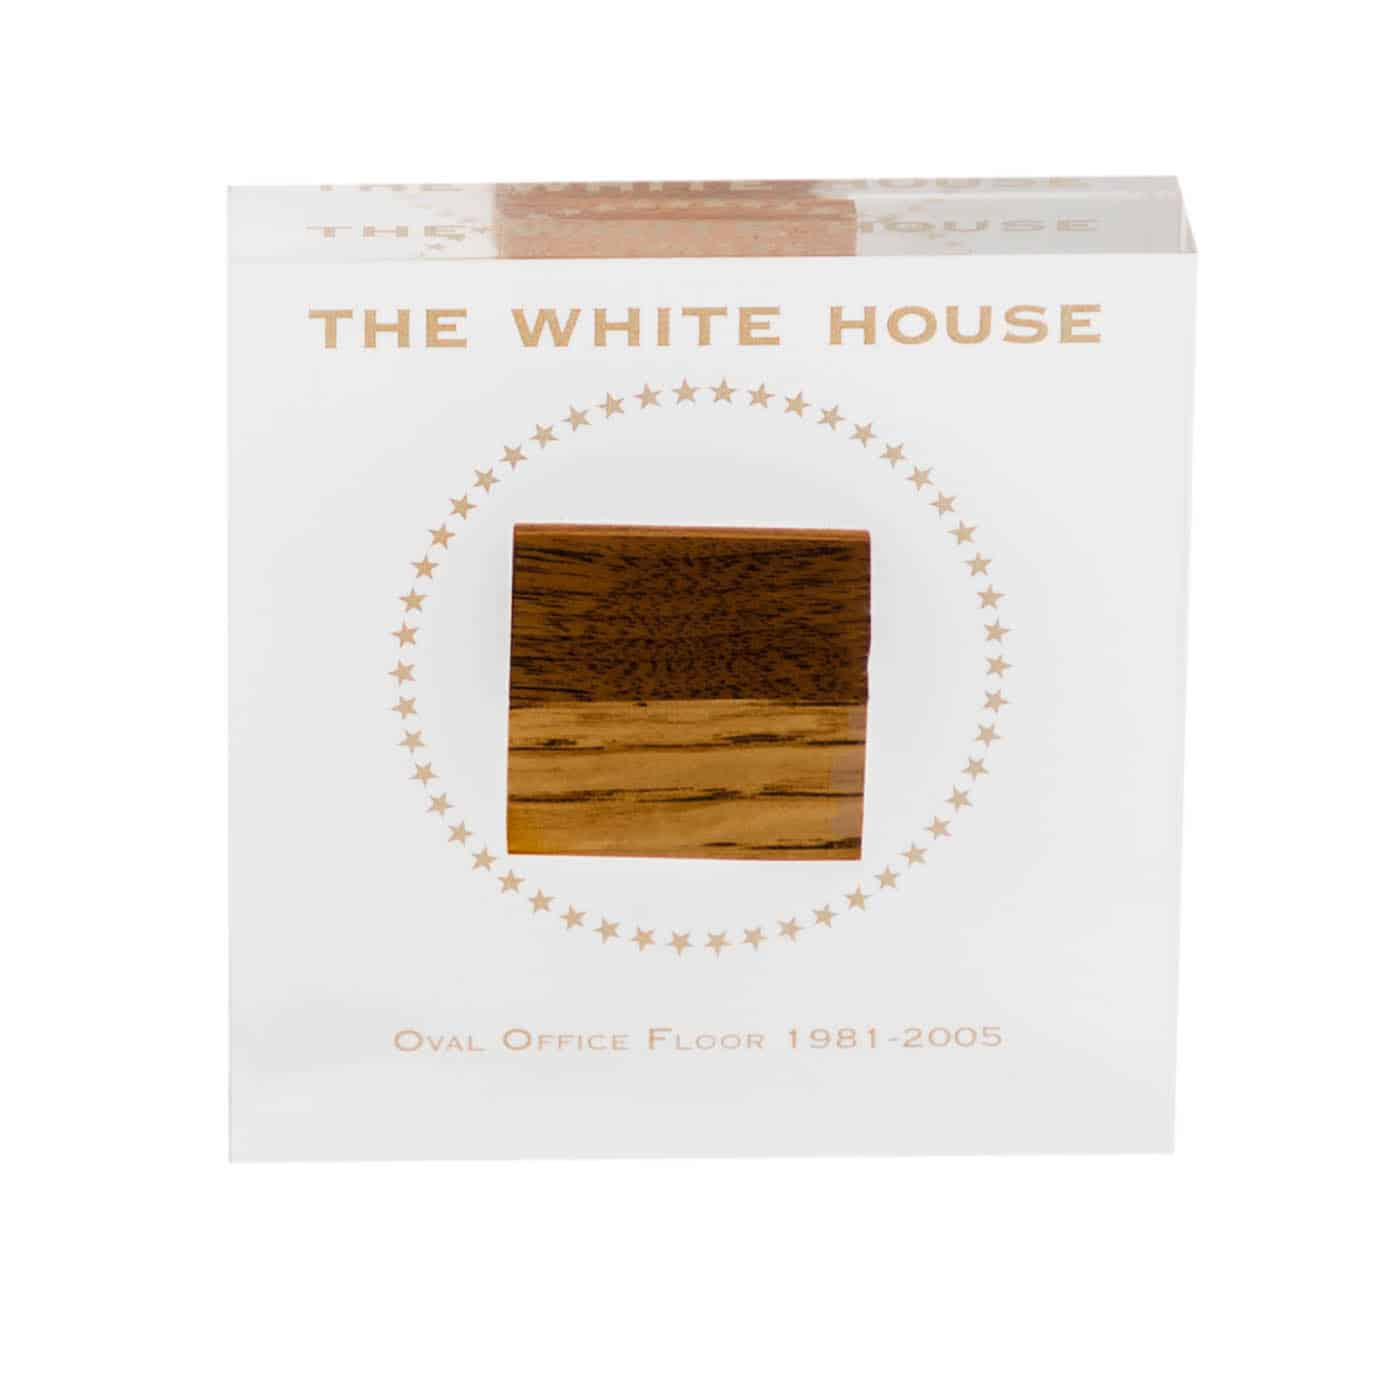 Oval office floor New Look White House Oval Office Floor Csrlalumniorg White House Oval Office Floor C Forbes Inc